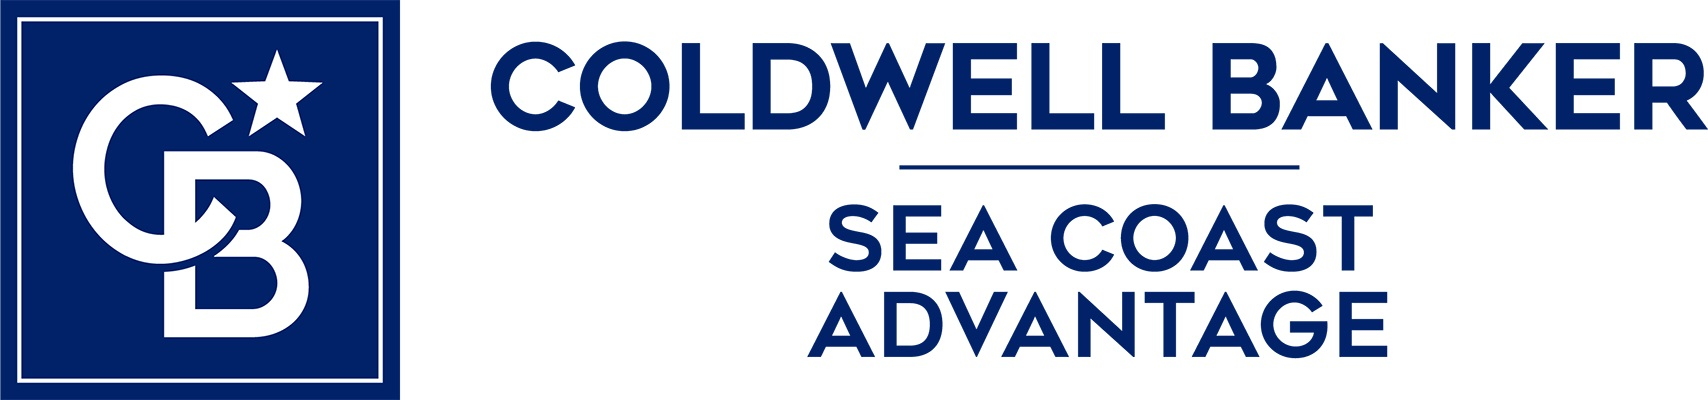 Brett Knowles - Coldwell Banker Sea Coast Advantage Realty Logo